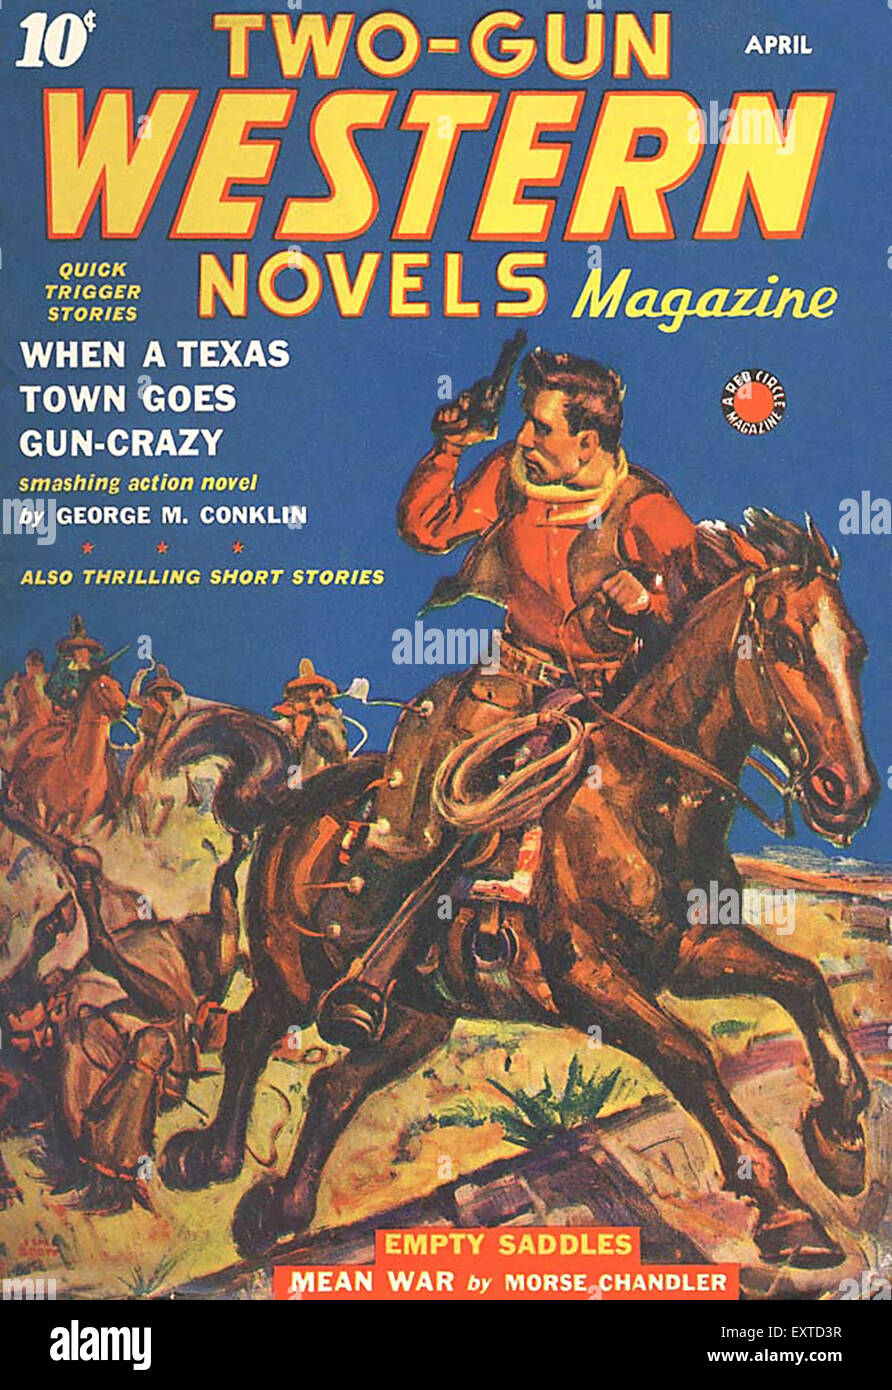 1940s USA Two-Gun Western Novels Magazine Cover - Stock Image